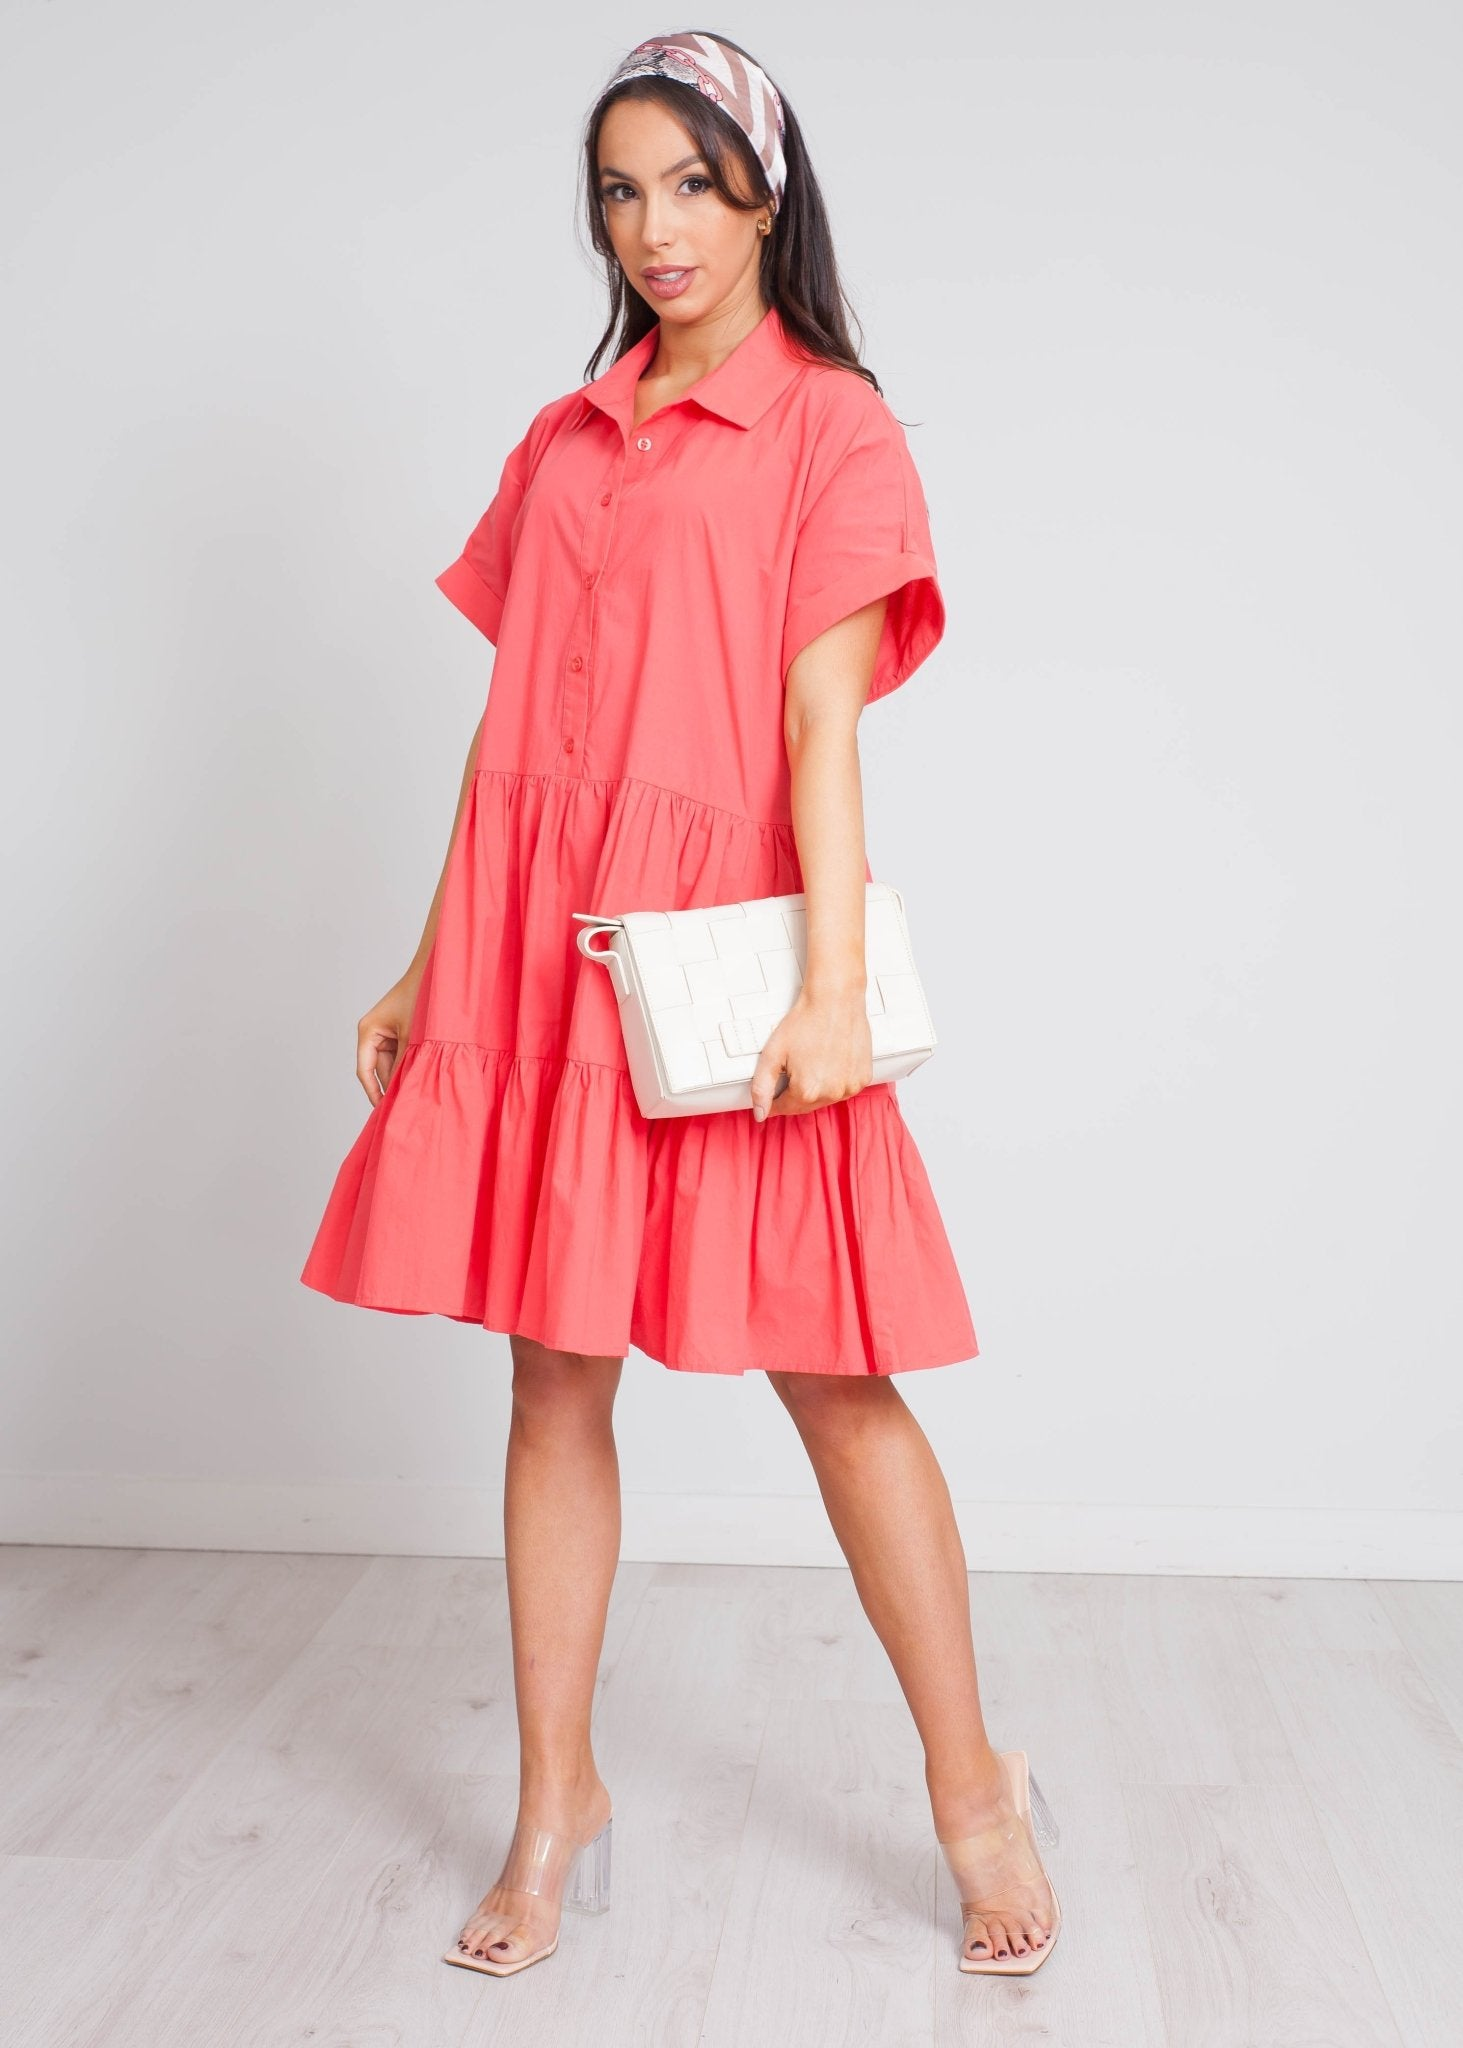 Becca Tiered Shirt Dress In Coral - The Walk in Wardrobe